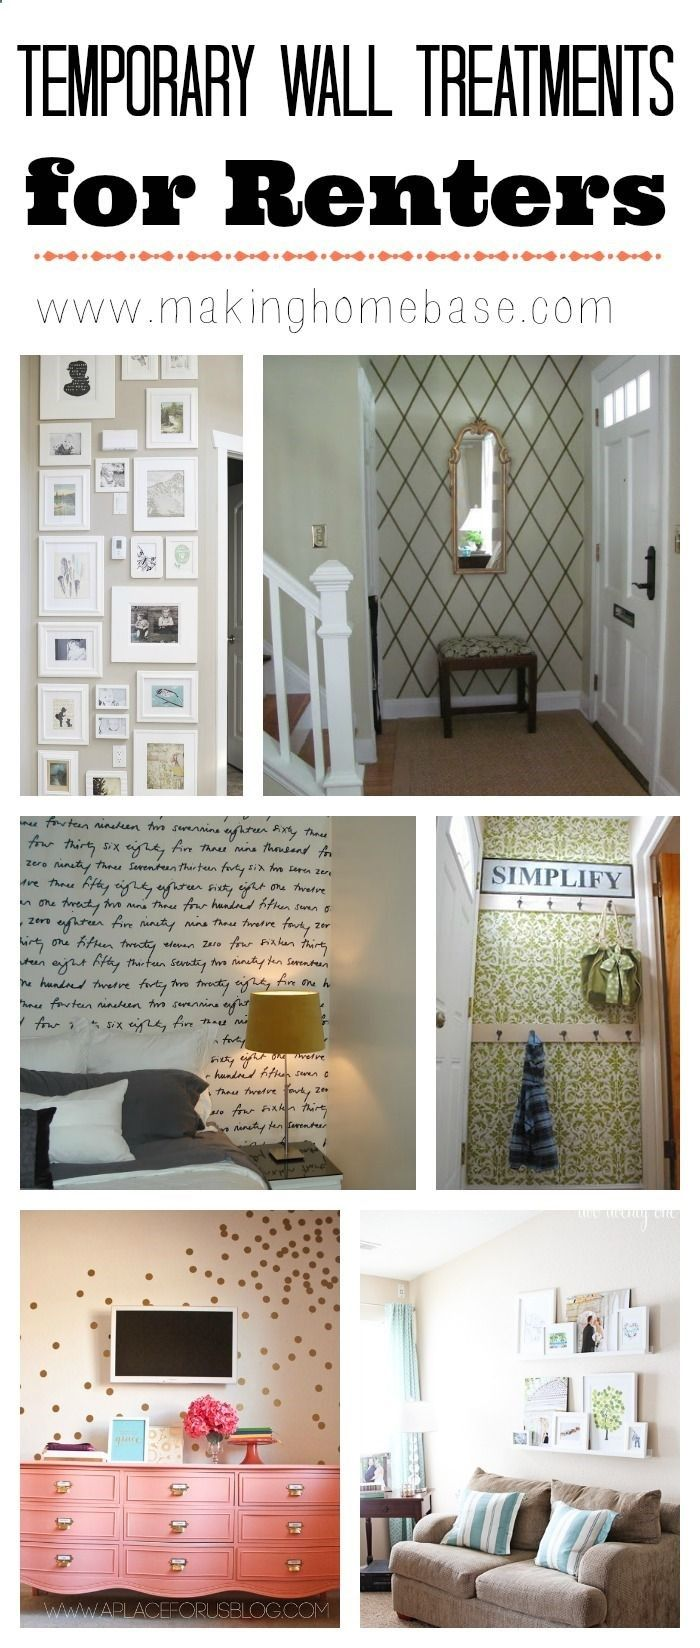 5513391793555555407586 Temporary Wall Treatment Ideas for Renters (or homeowners)